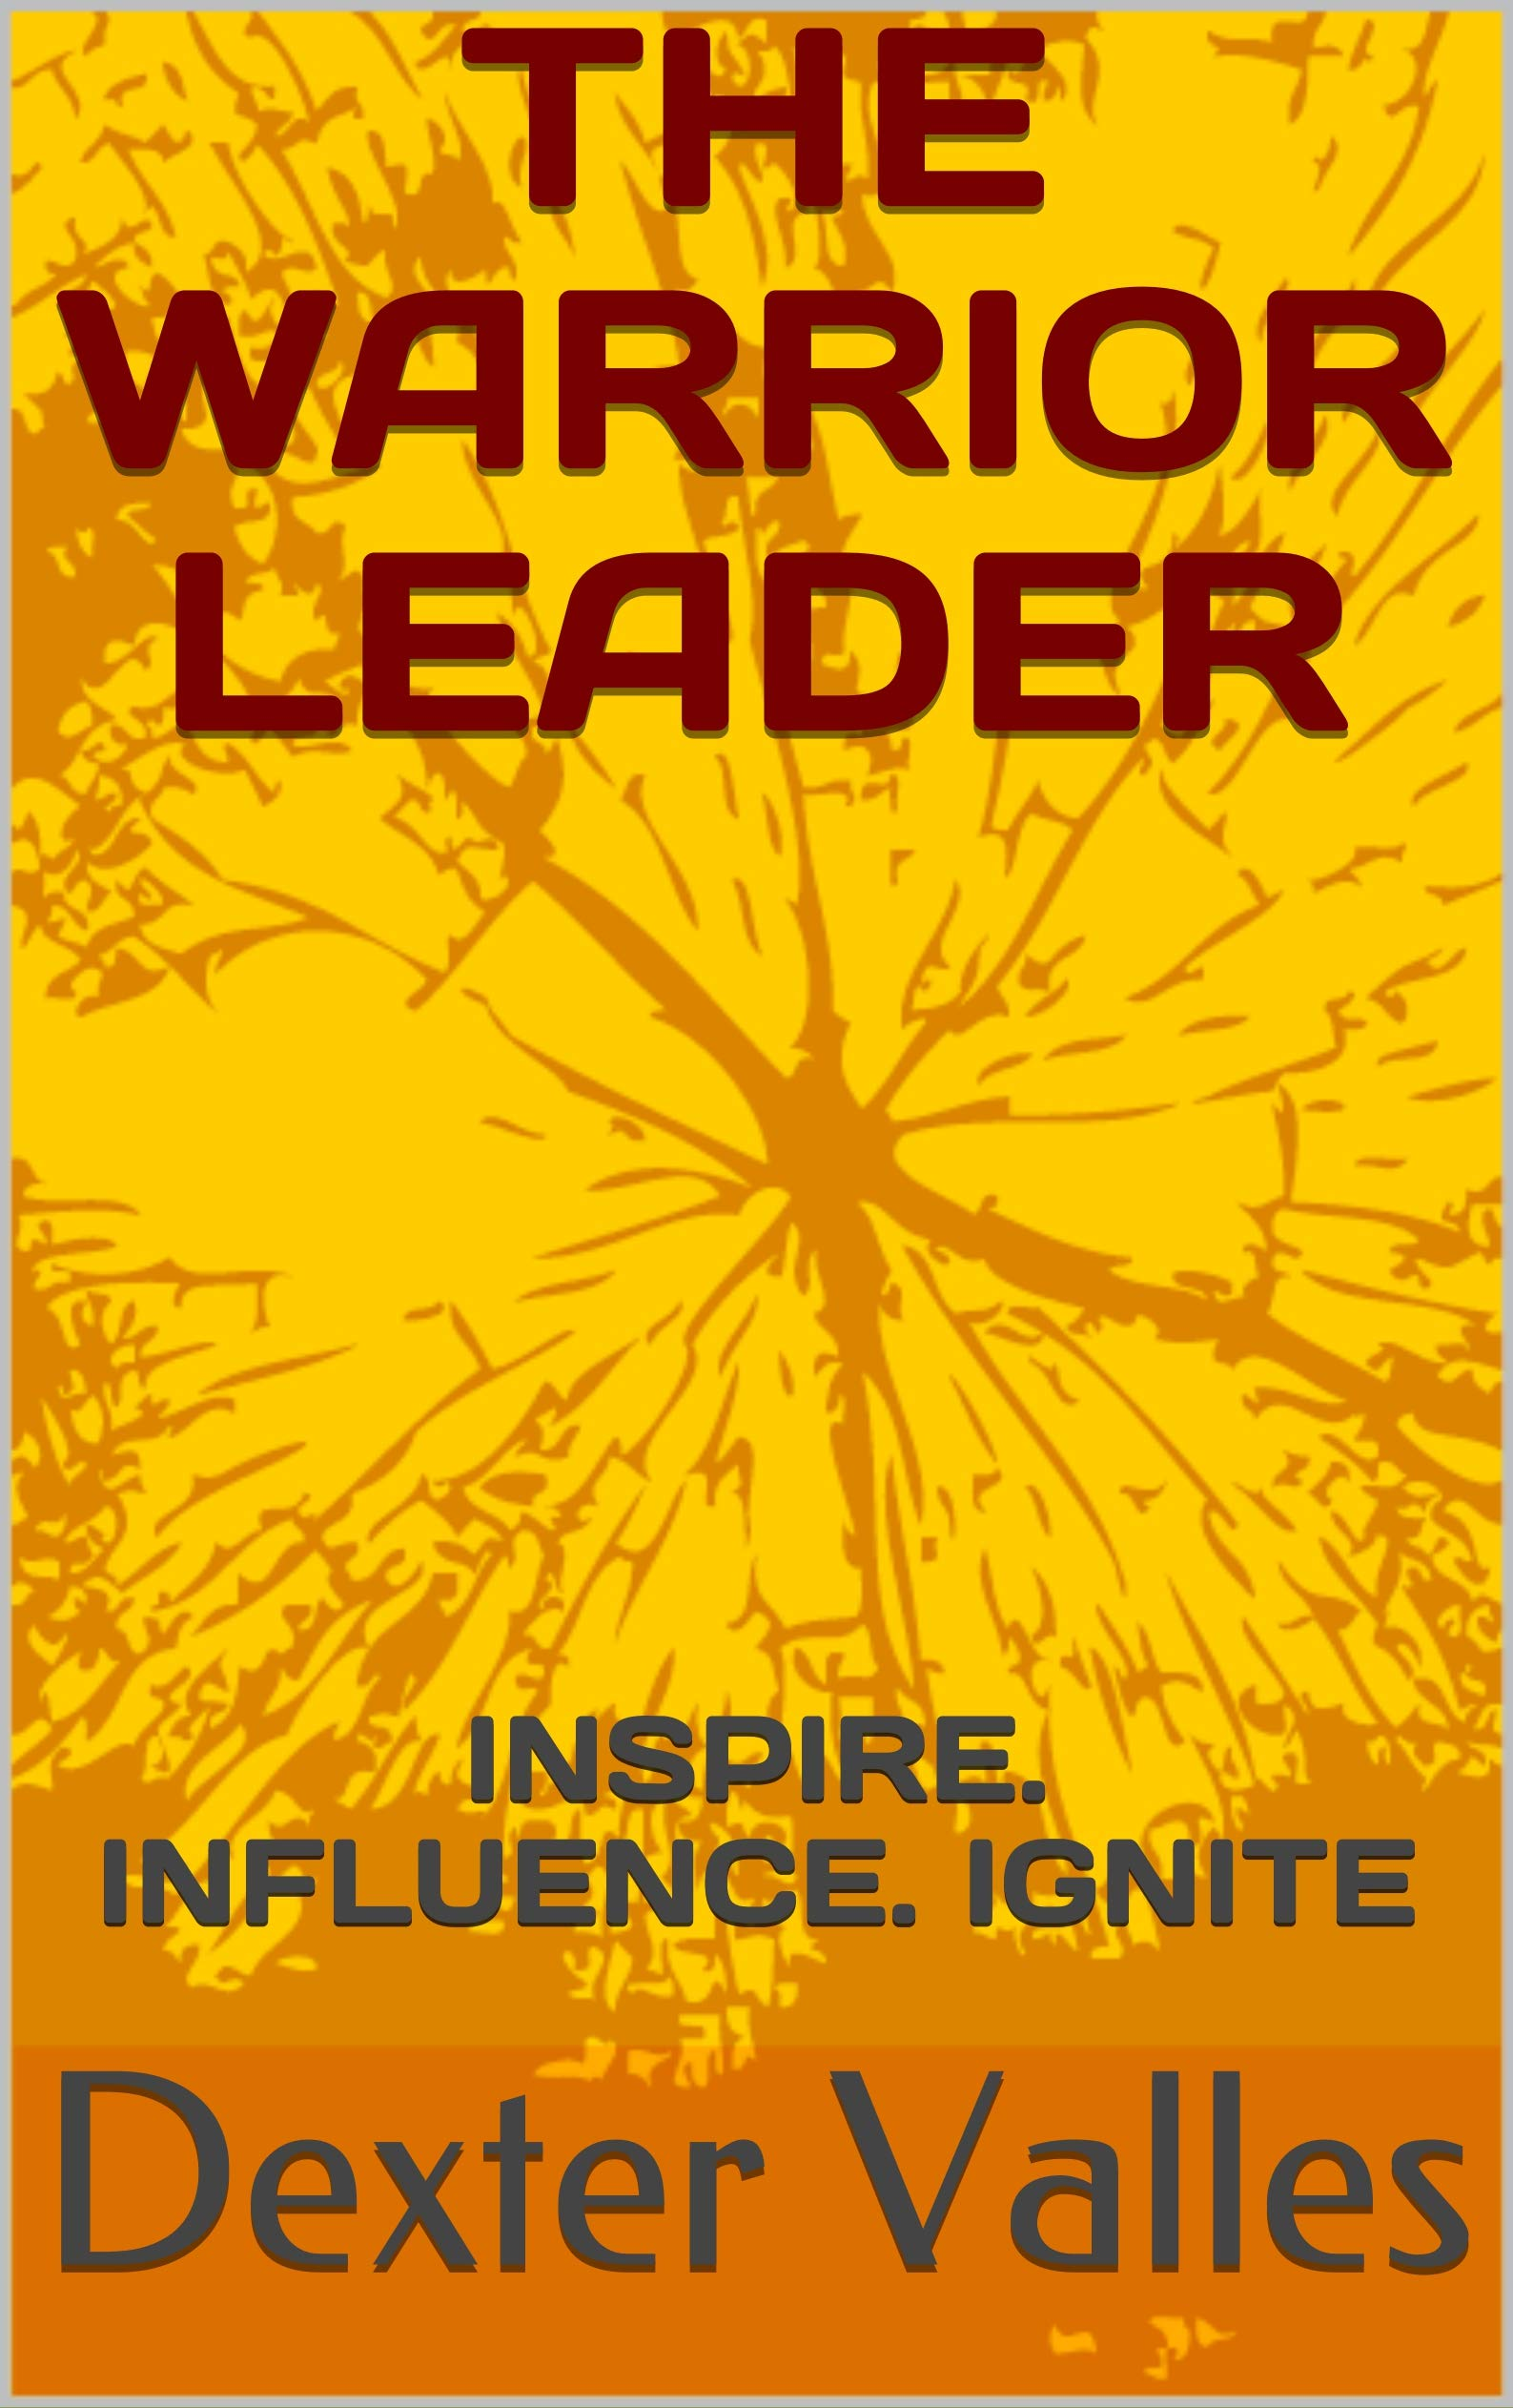 THE WARRIOR LEADER: INSPIRE. INFLUENCE. IGNITE (LEADERSHIP IMPERATIVES Book 1)